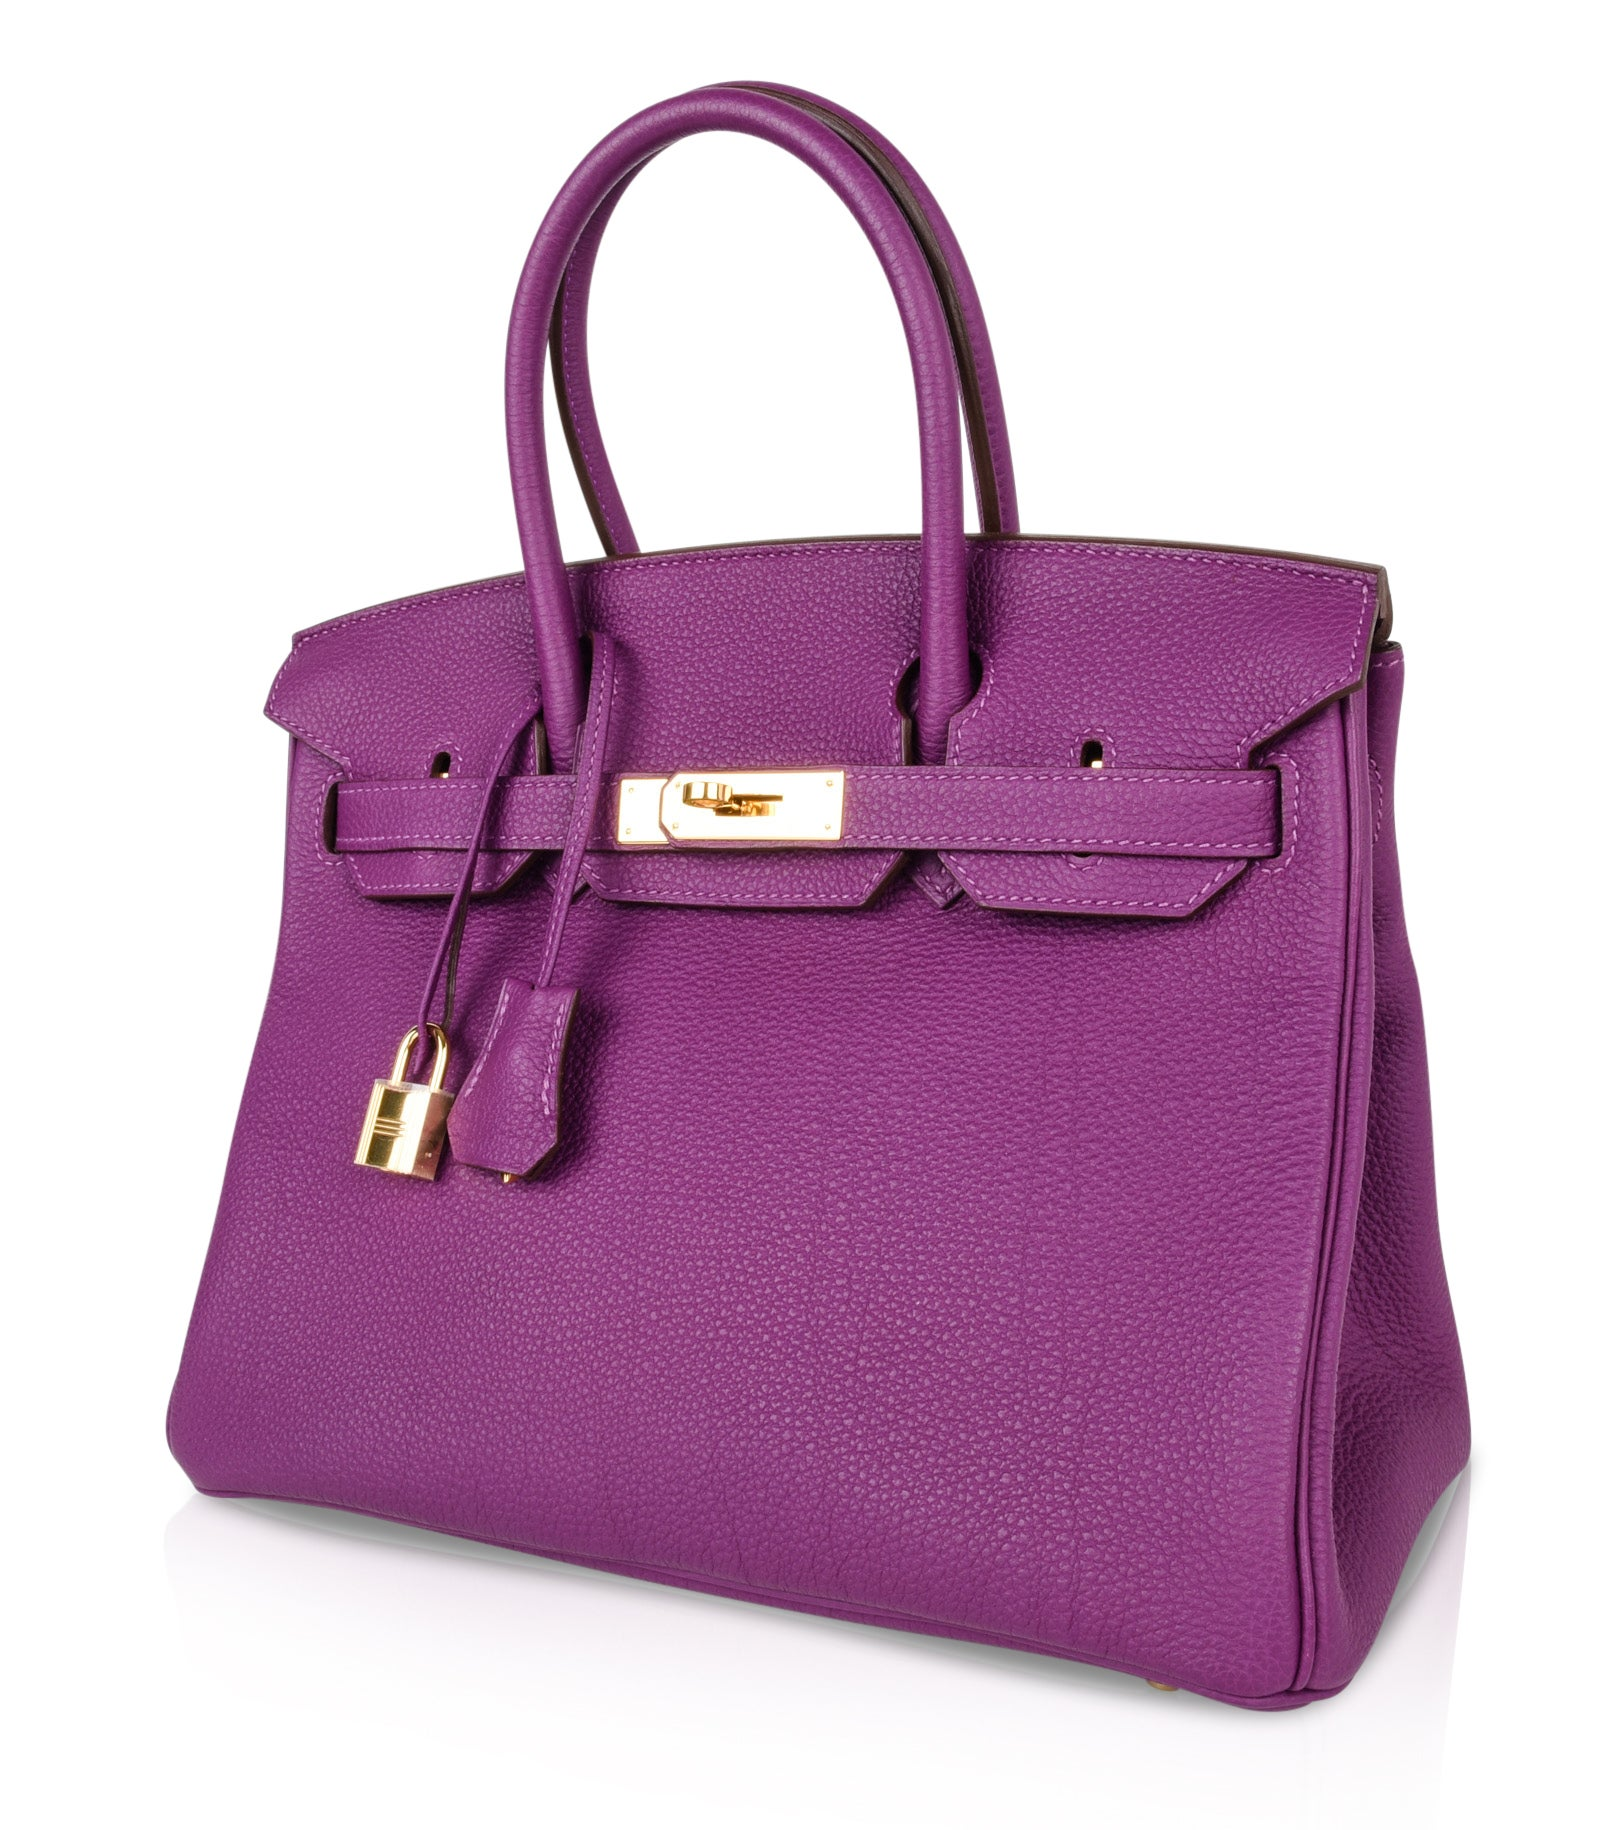 712c4dd9165 ... wholesale hermes birkin 30 anemone purple togo gold hardware exotic  beauty for sale at 1stdibs e3f5c